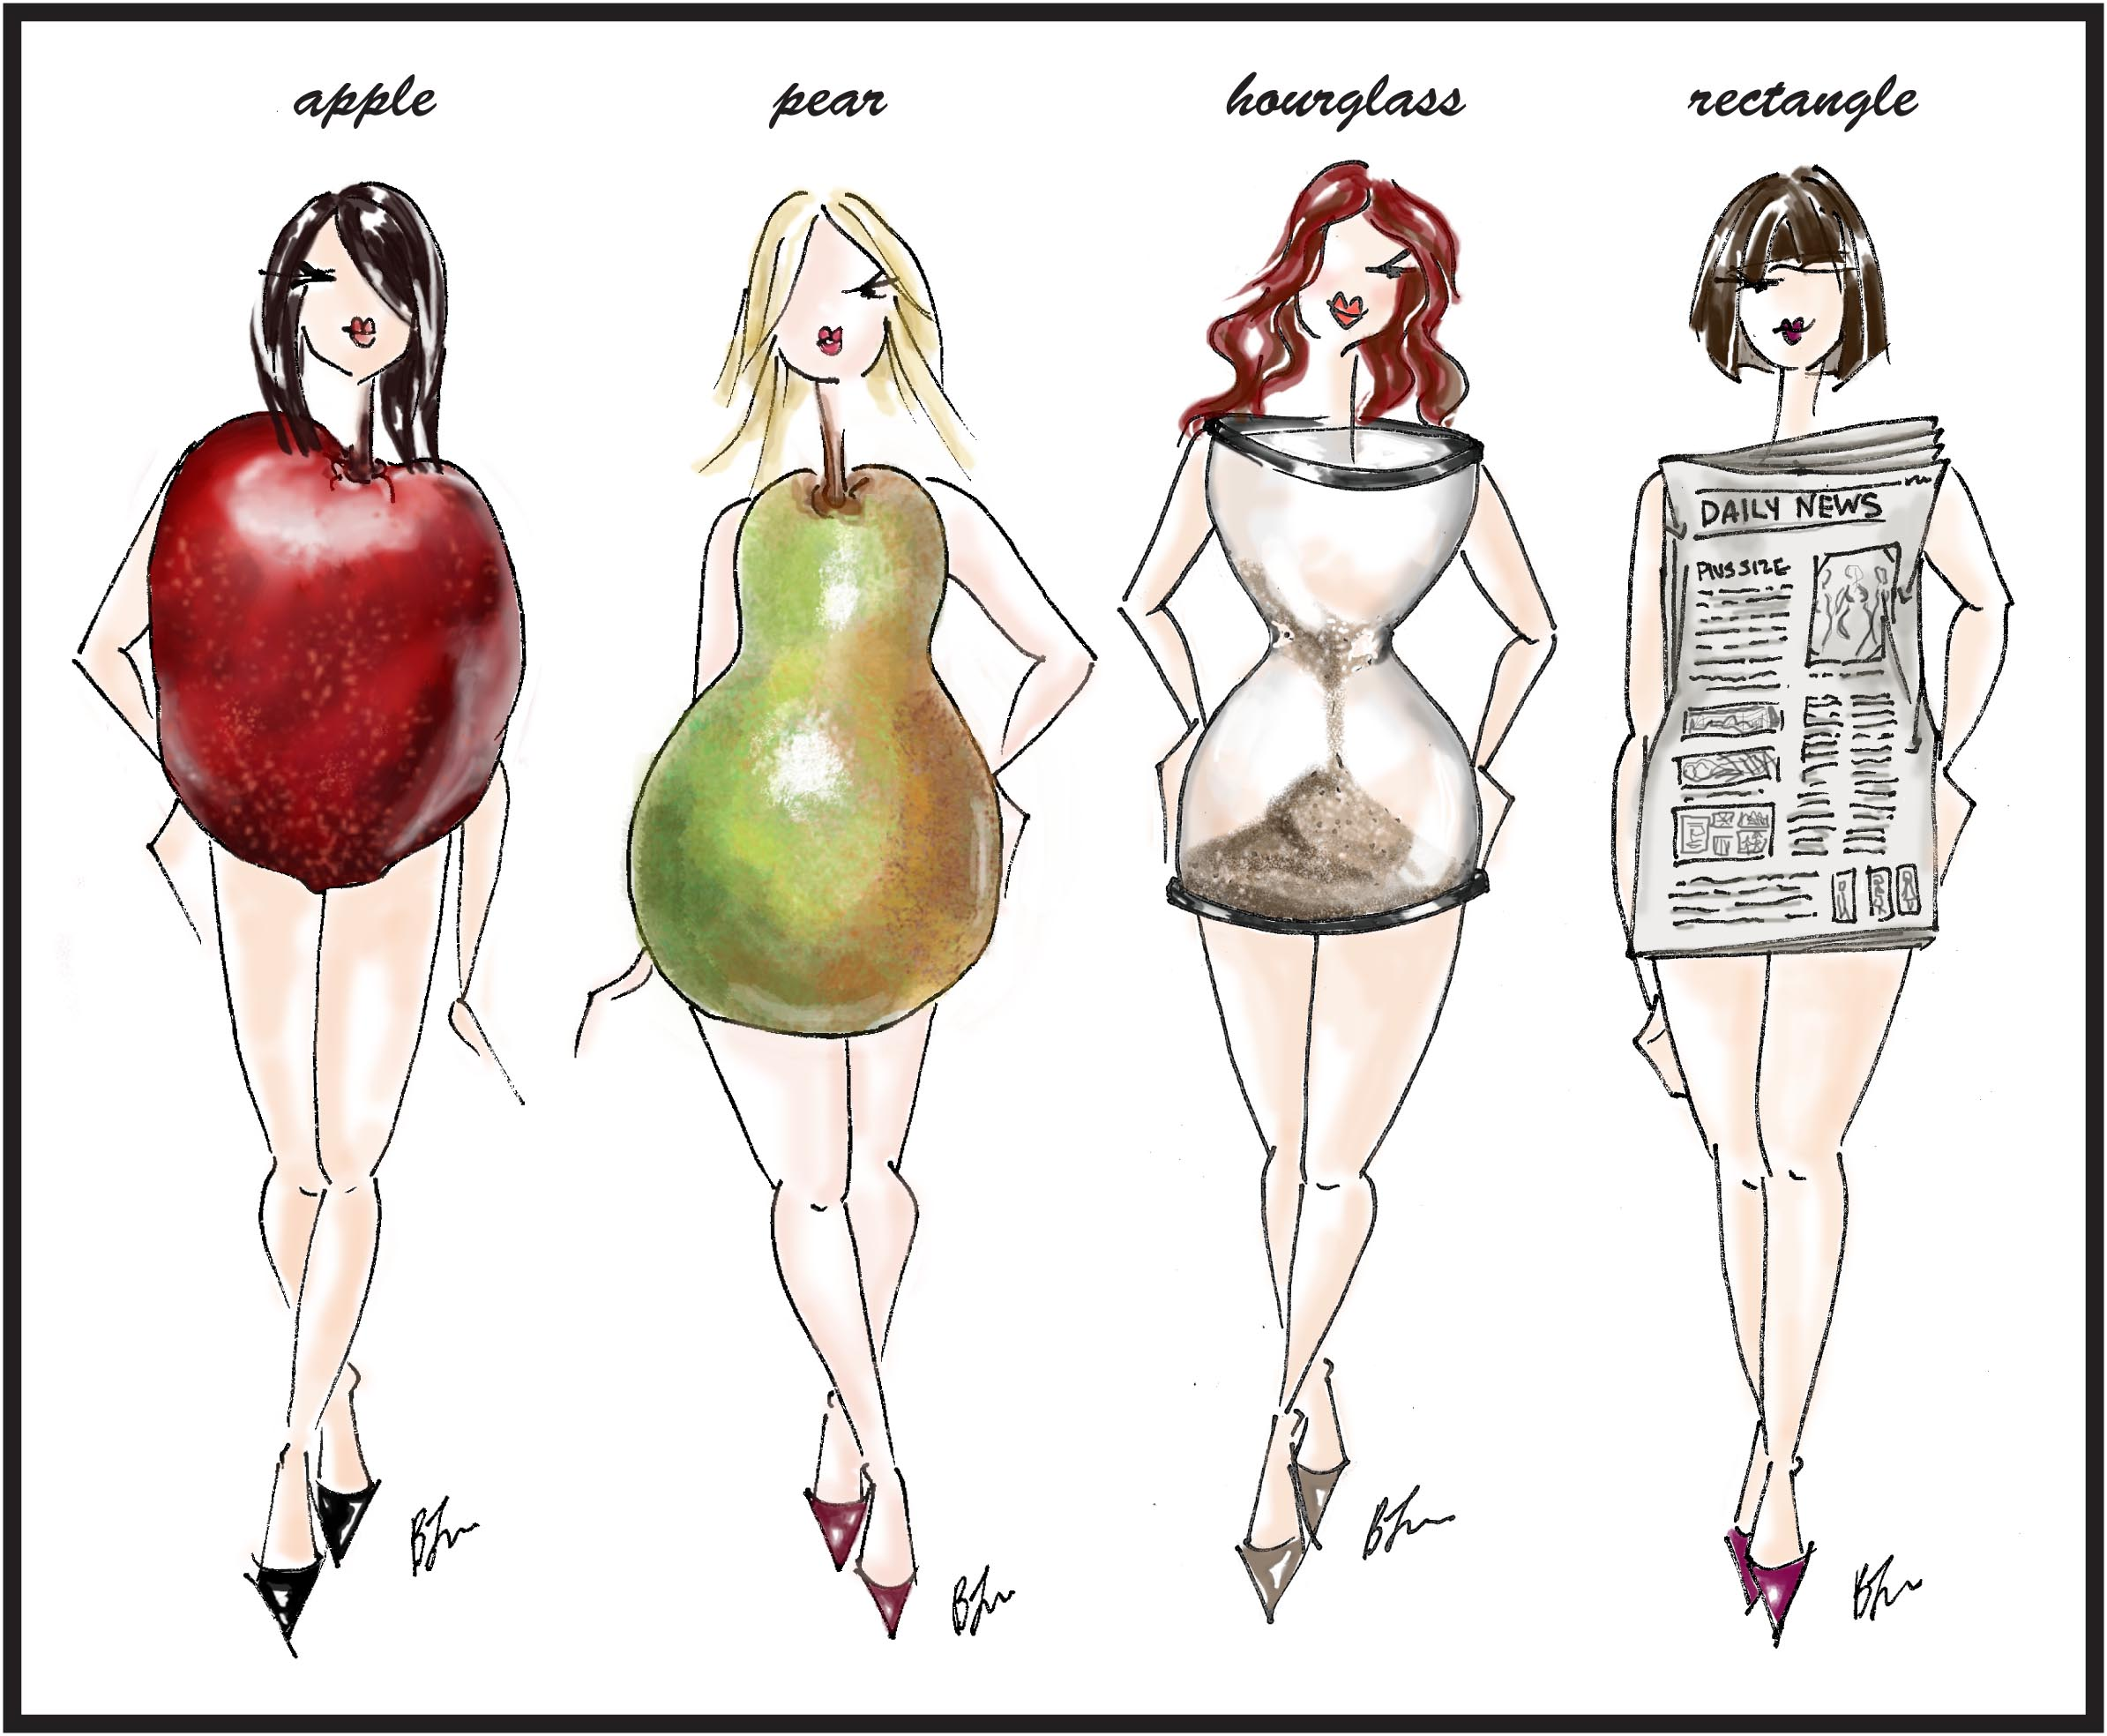 APPLE   PEAR   HOURGLASS   RECTANGLE